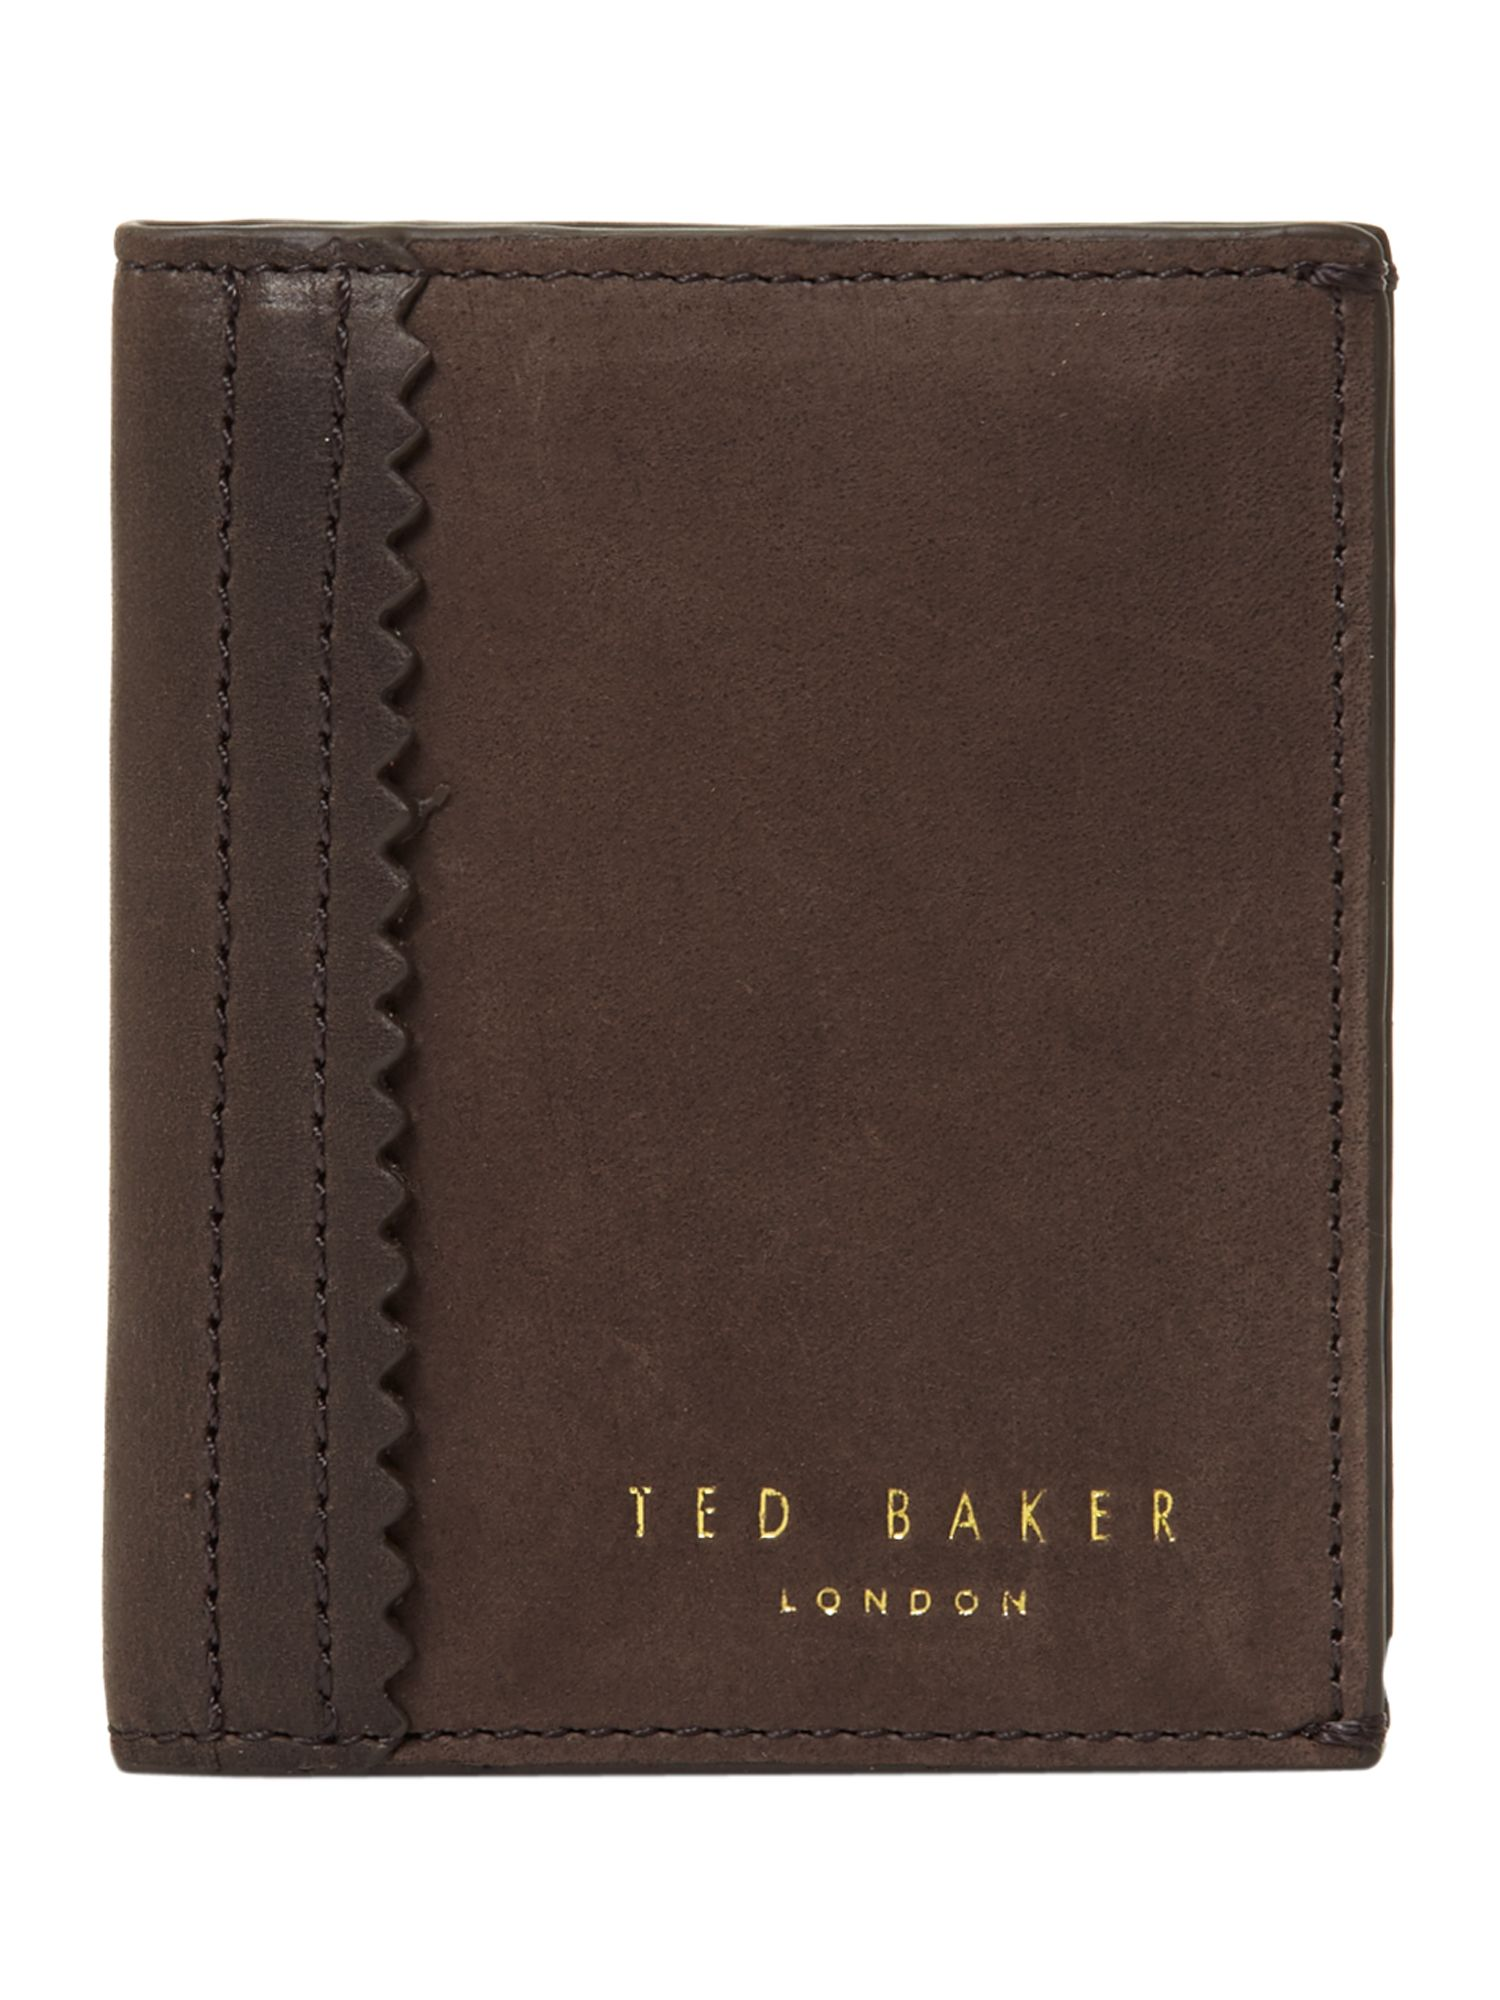 Polished leather bifold wallet